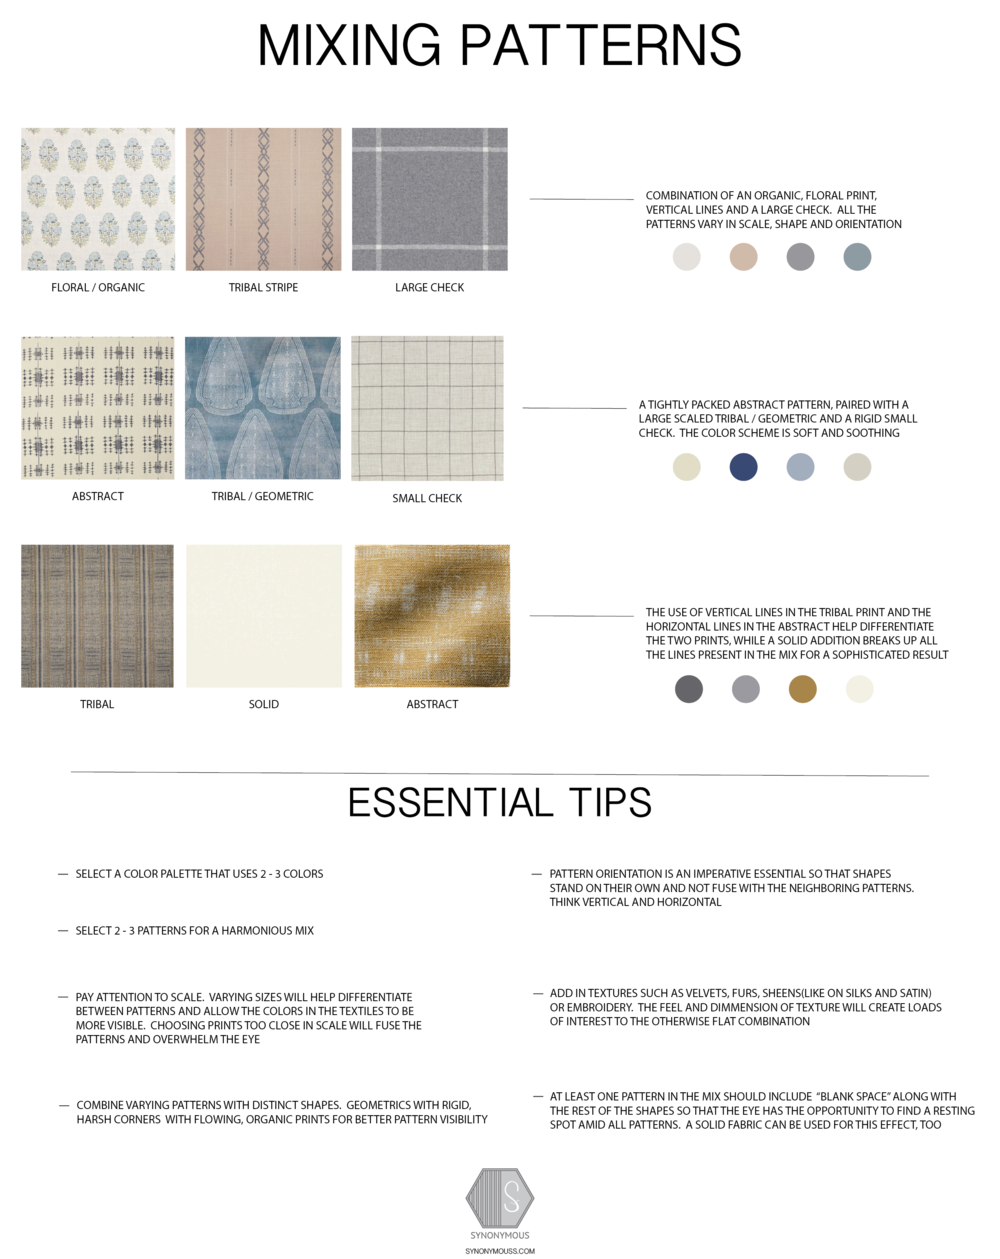 Design Study:  Guide To: How To Mix Patterns - SYNONYMOUS